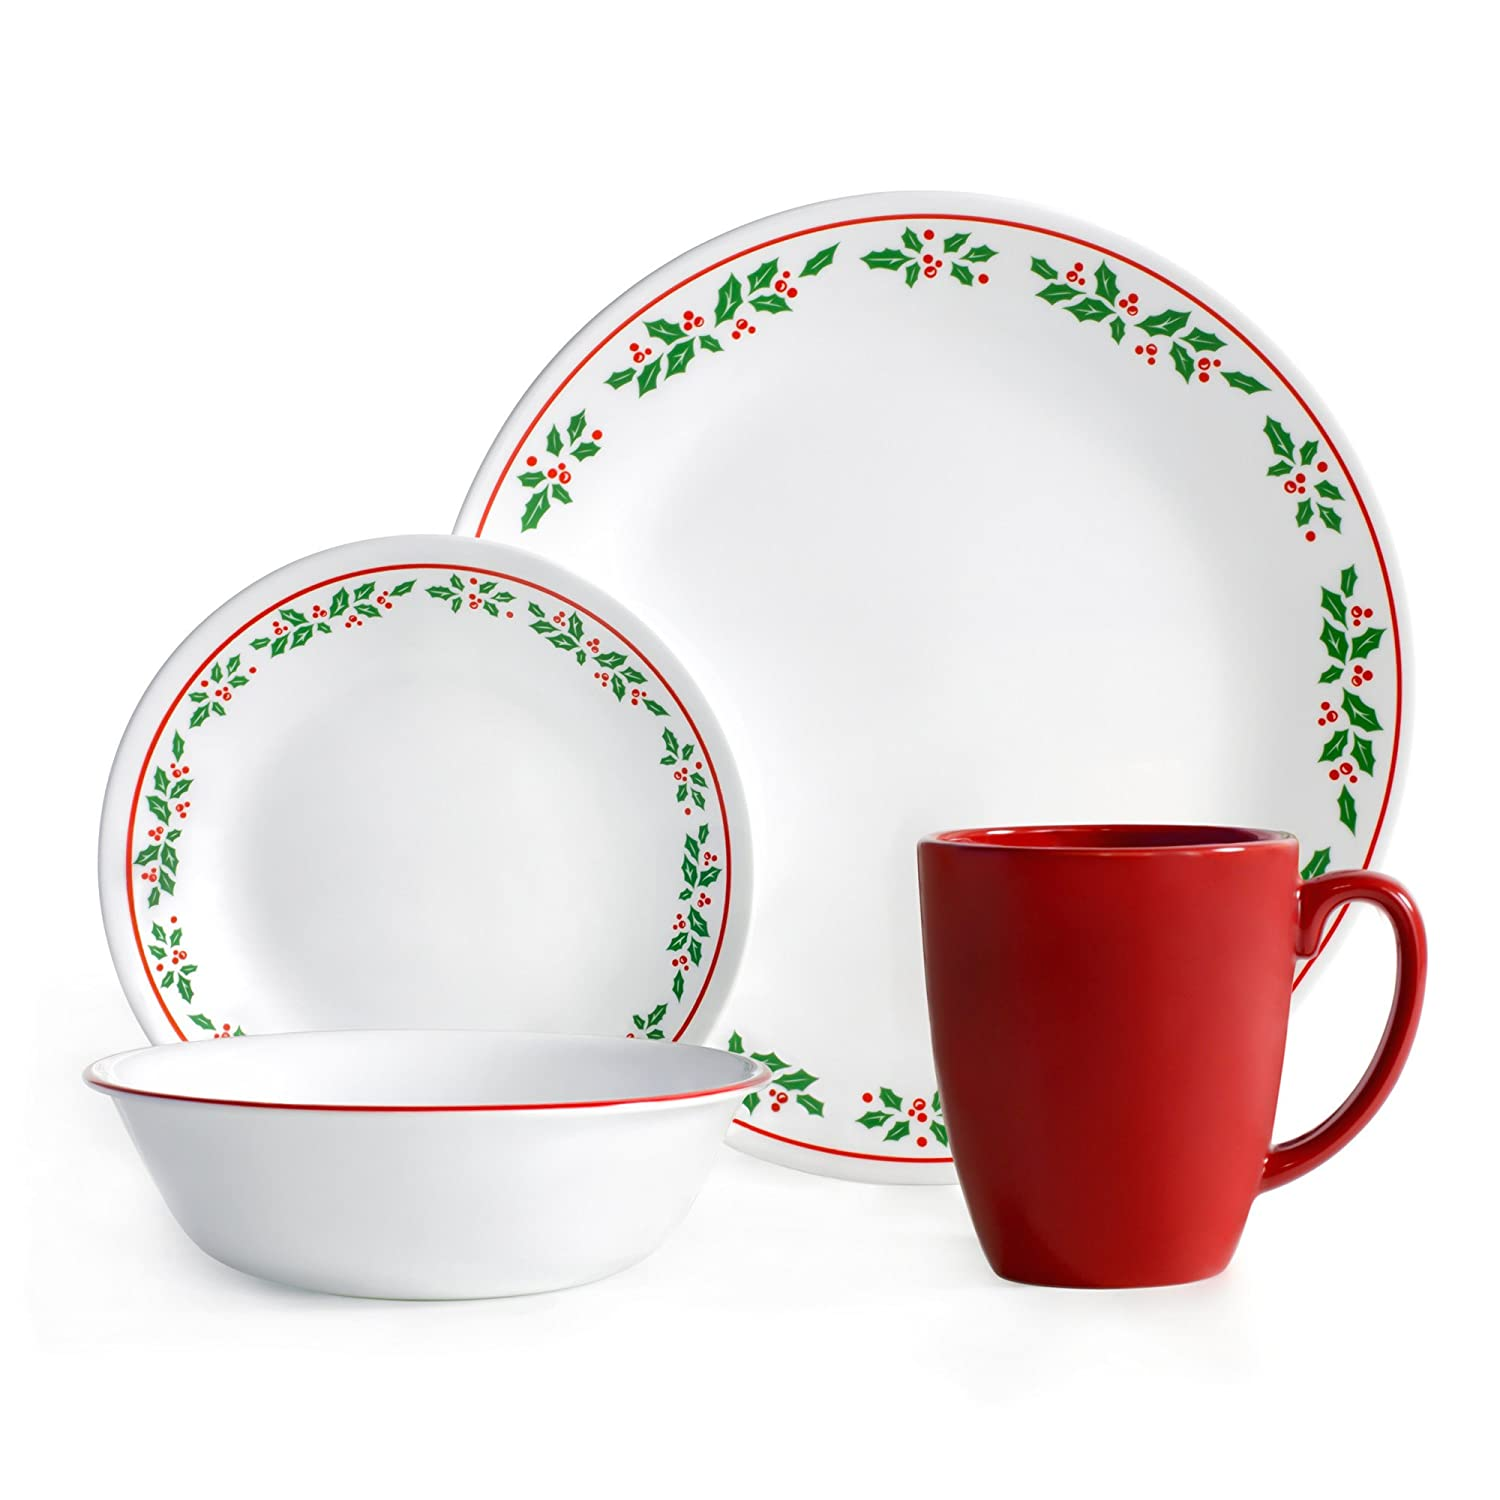 Amazon.com Corelle Impressions 16-Piece Dinnerware Set Birds and Boughs Service for 4 Kitchen \u0026 Dining  sc 1 st  Amazon.com & Amazon.com: Corelle Impressions 16-Piece Dinnerware Set Birds and ...